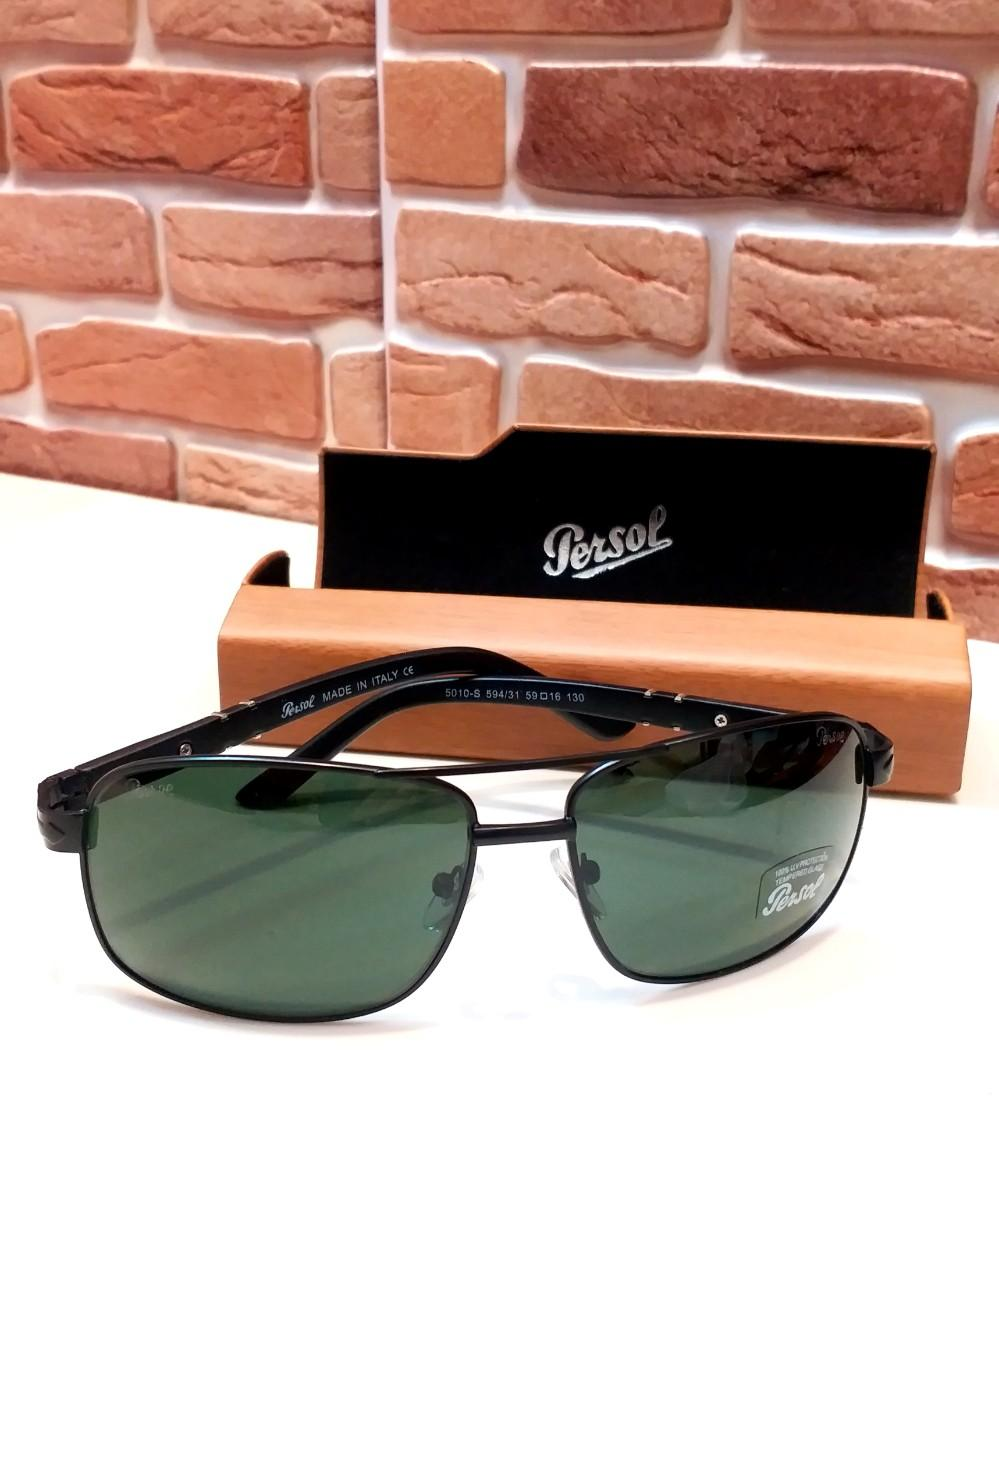 6a59dec2fb256 Persol New style sunglasses very best quality original Glass metal frame  2019